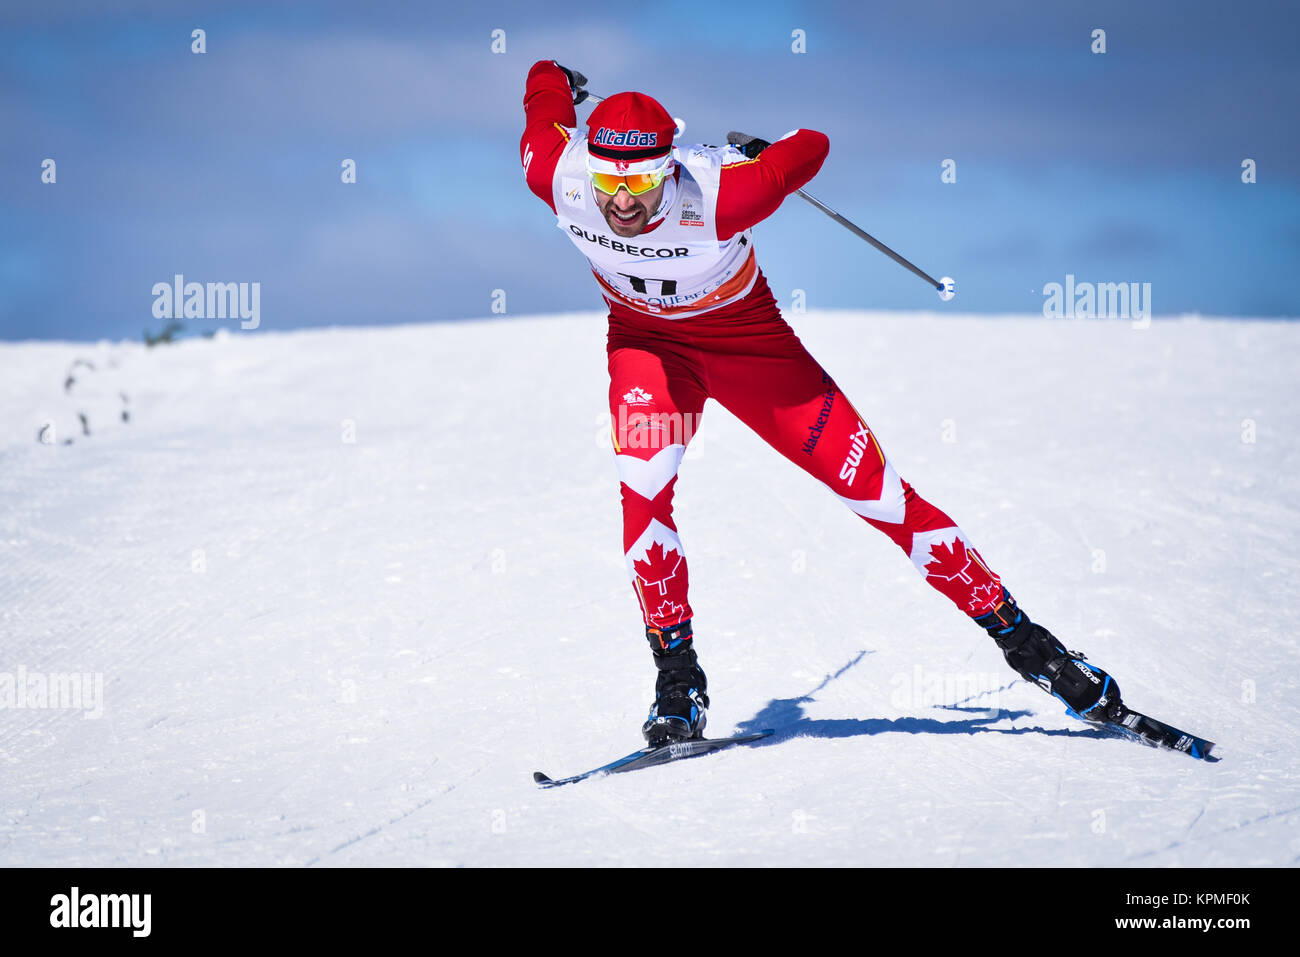 Canadian ski team's Alex Harvey (Quebec) skis in qualifiers at 2017 FIS Nordic World Cup sprint finals in Quebec - Stock Image